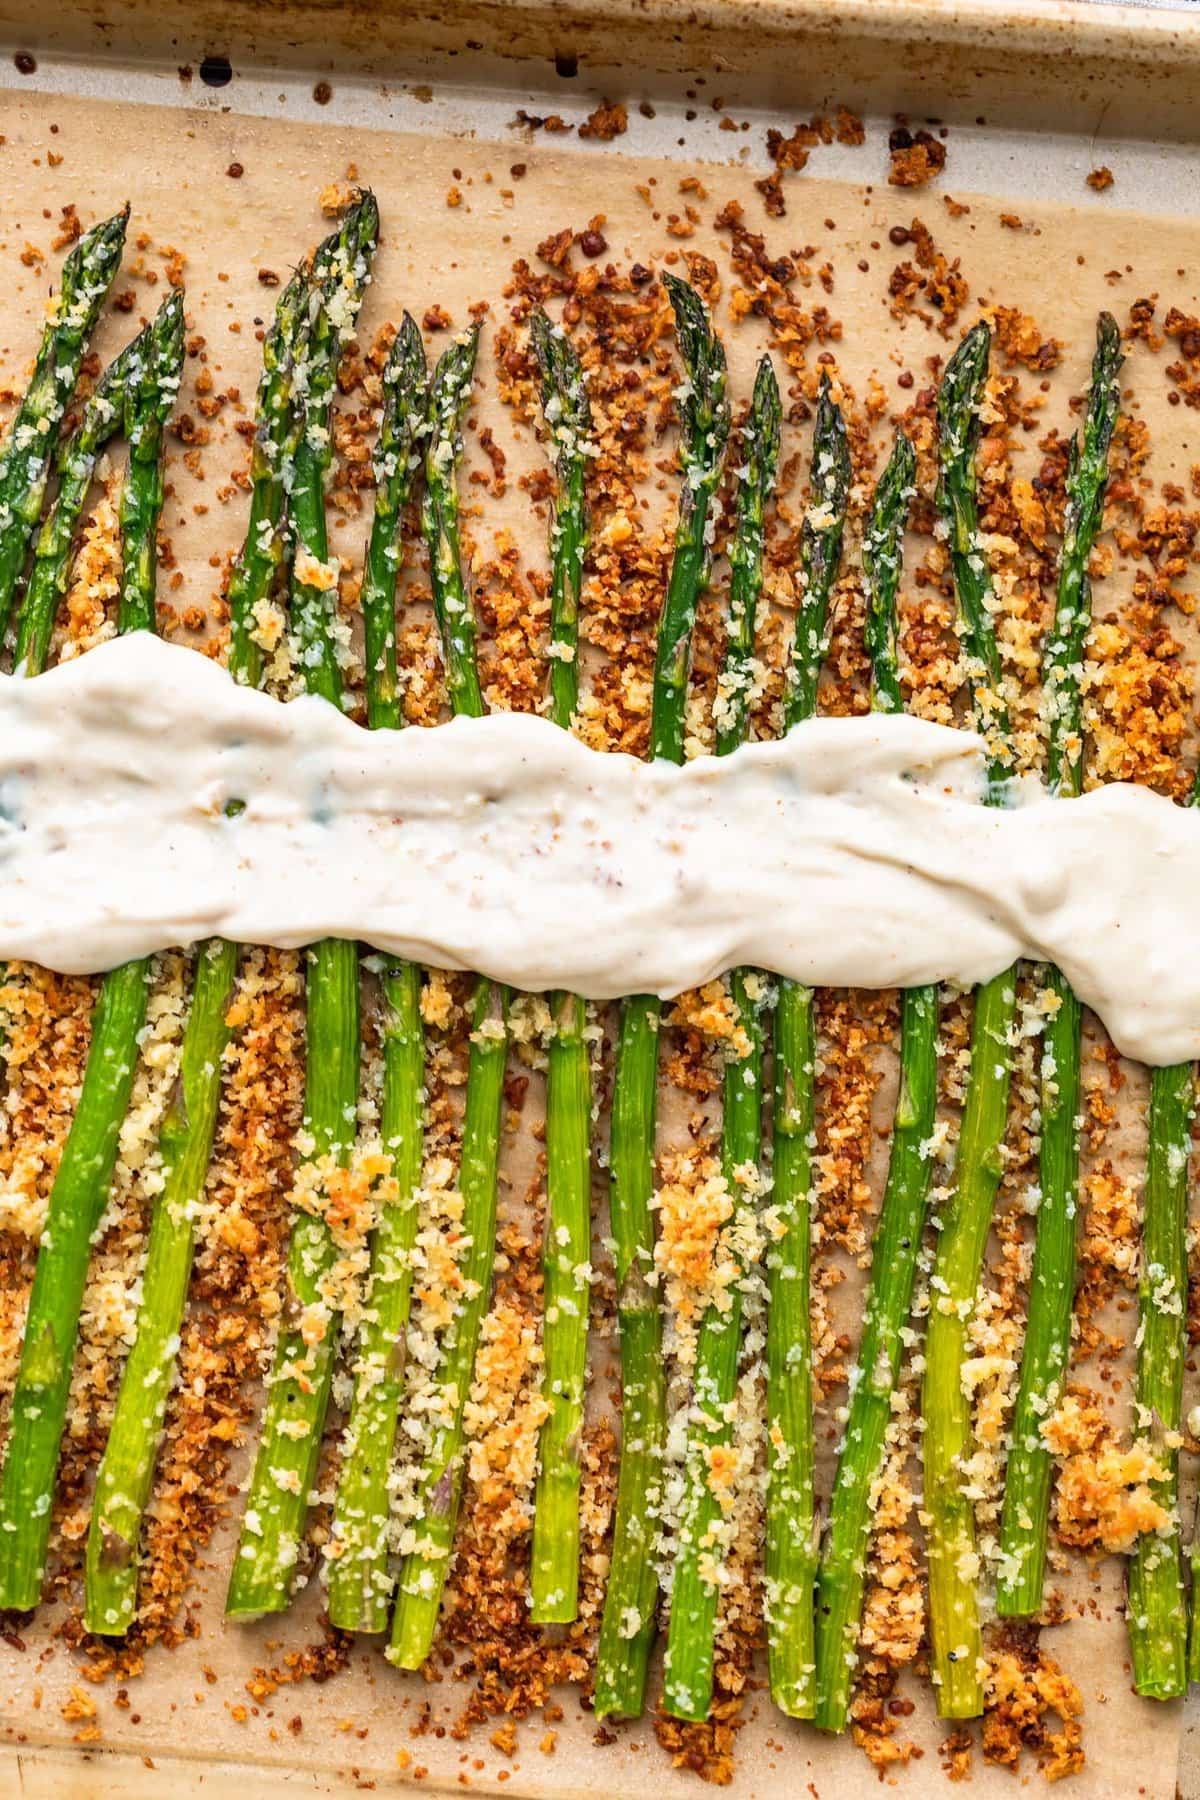 garlic asparagus topped with garlic aioli